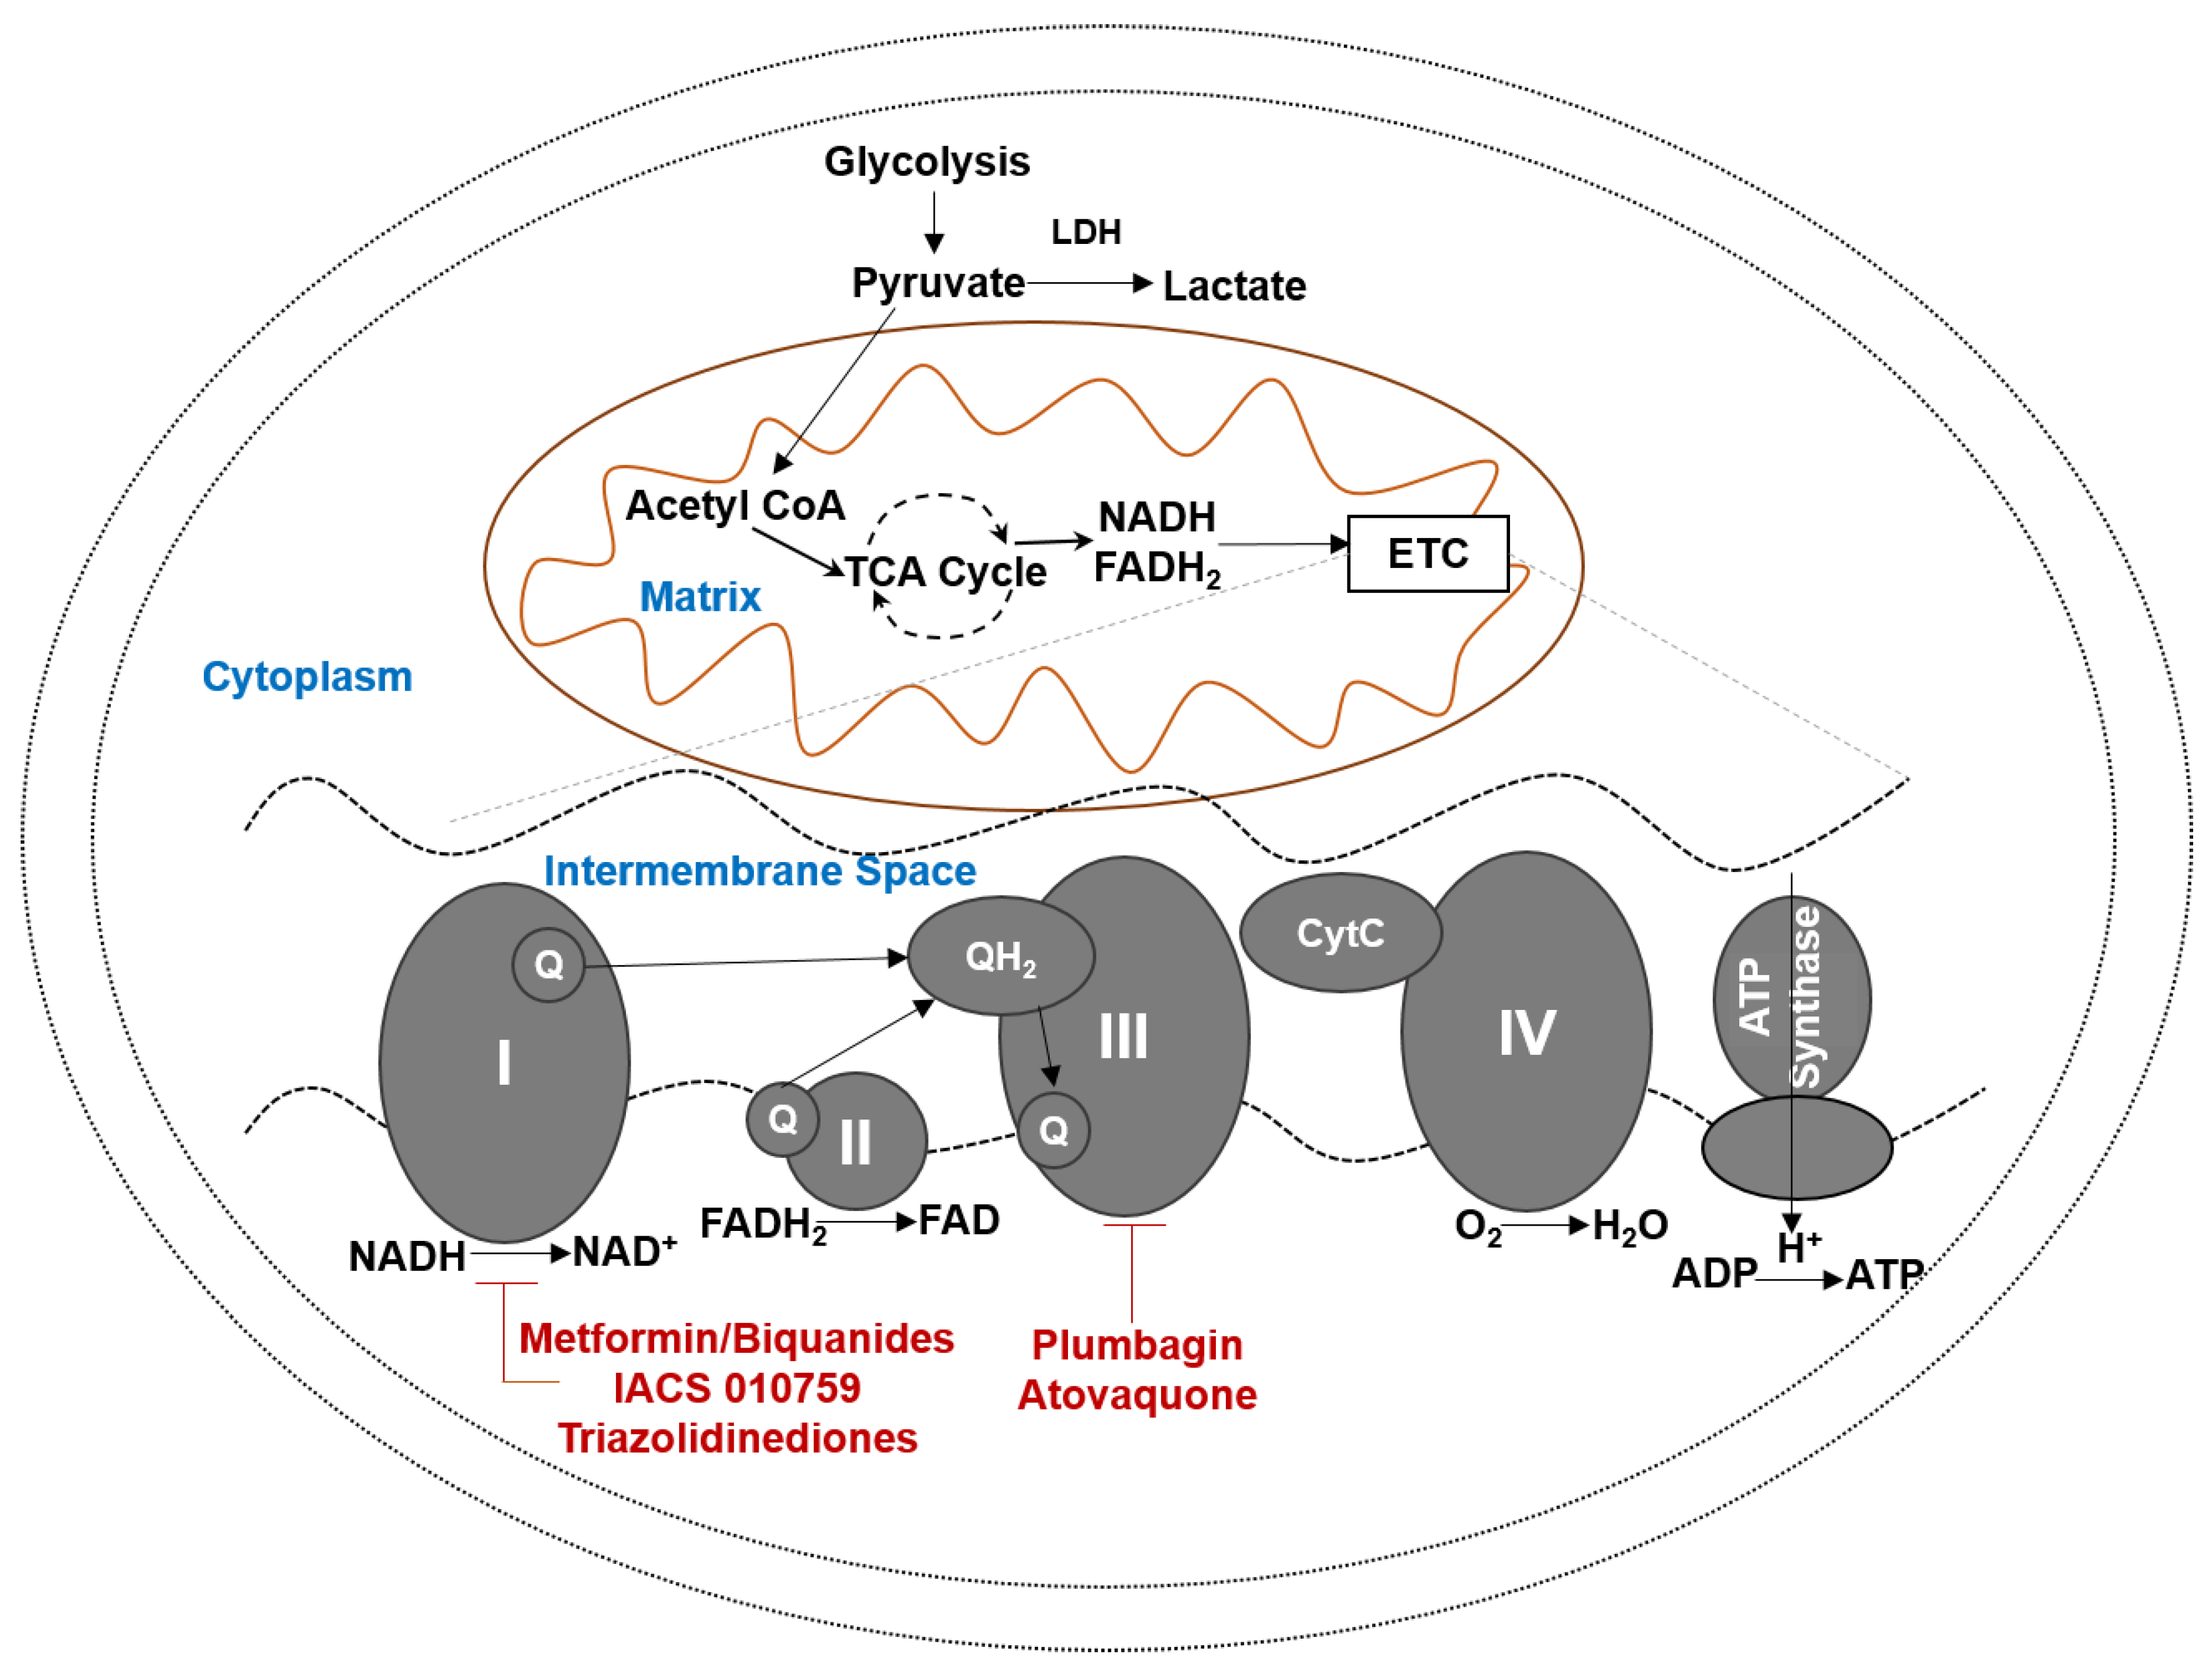 Cancers Free Fulltext Oxidative Phosphorylation A Target For. Cancers 10 00337 G001. Wiring. Pollak Ignition Switch Wiring Diagram For Wisconson At Scoala.co